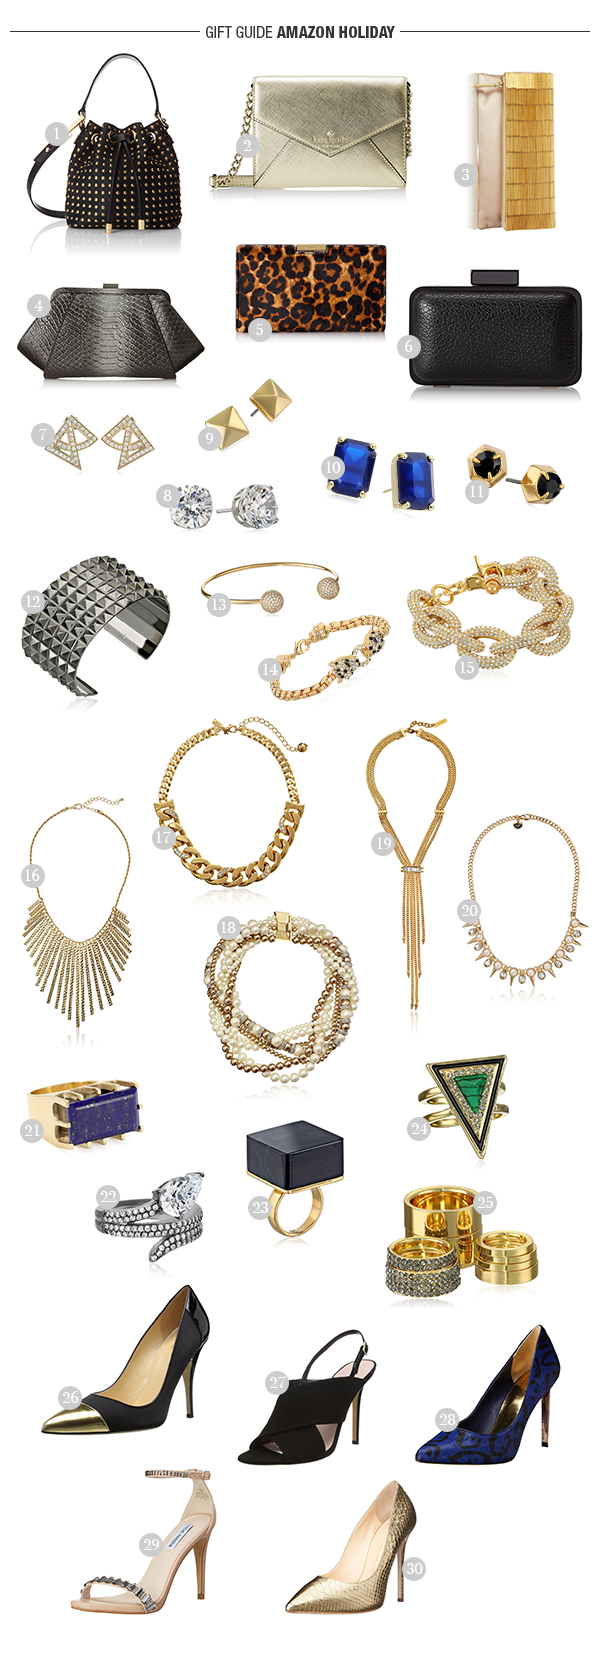 Gift-Guide, Elle, Amazon-Fashion, Holiday2014